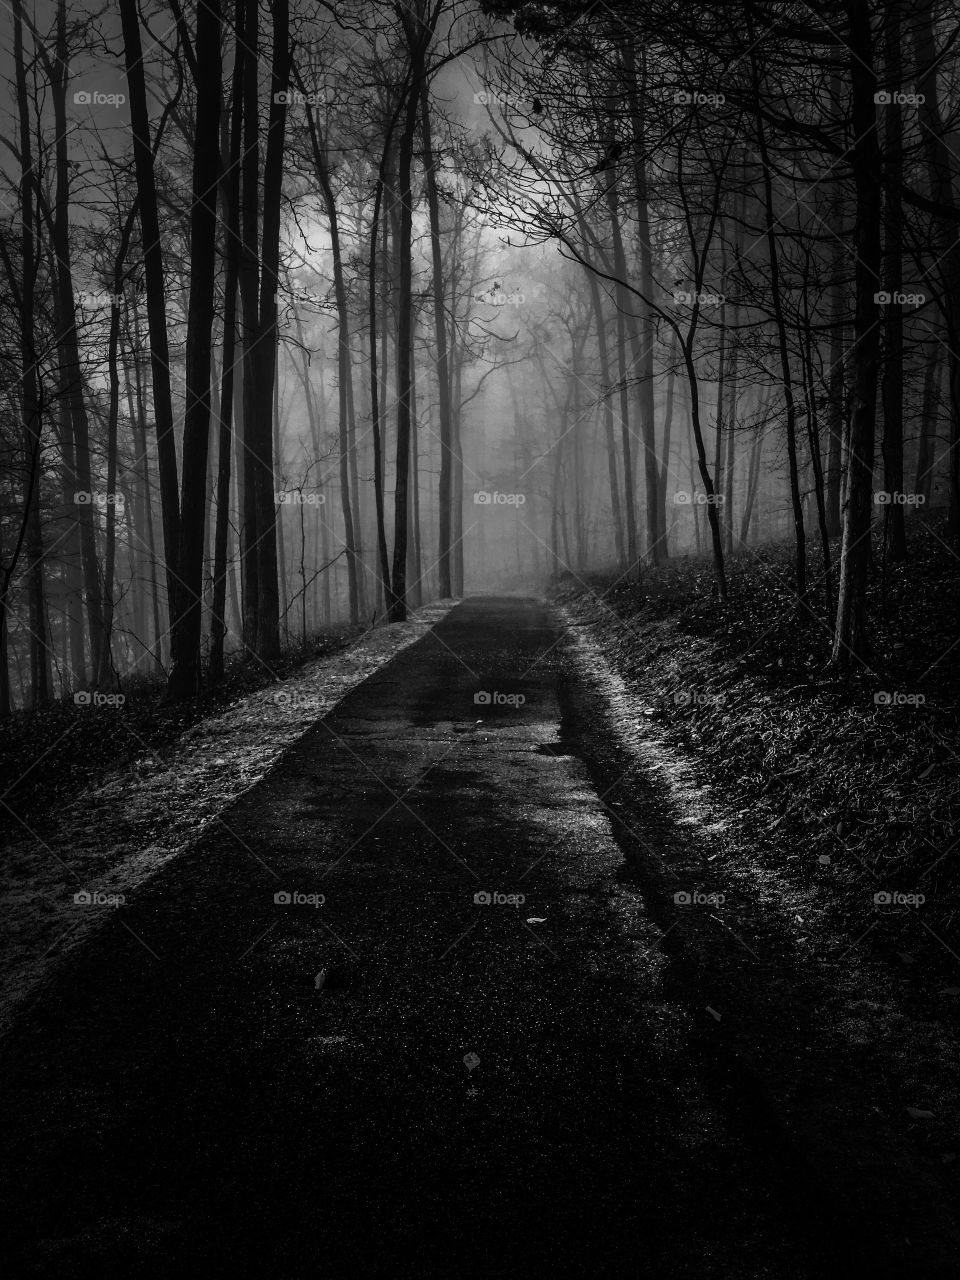 A dark and haunting image of a path through the foggy forest. Gearing up for Halloween. Tims Ford State Park in Winchester Tennessee.